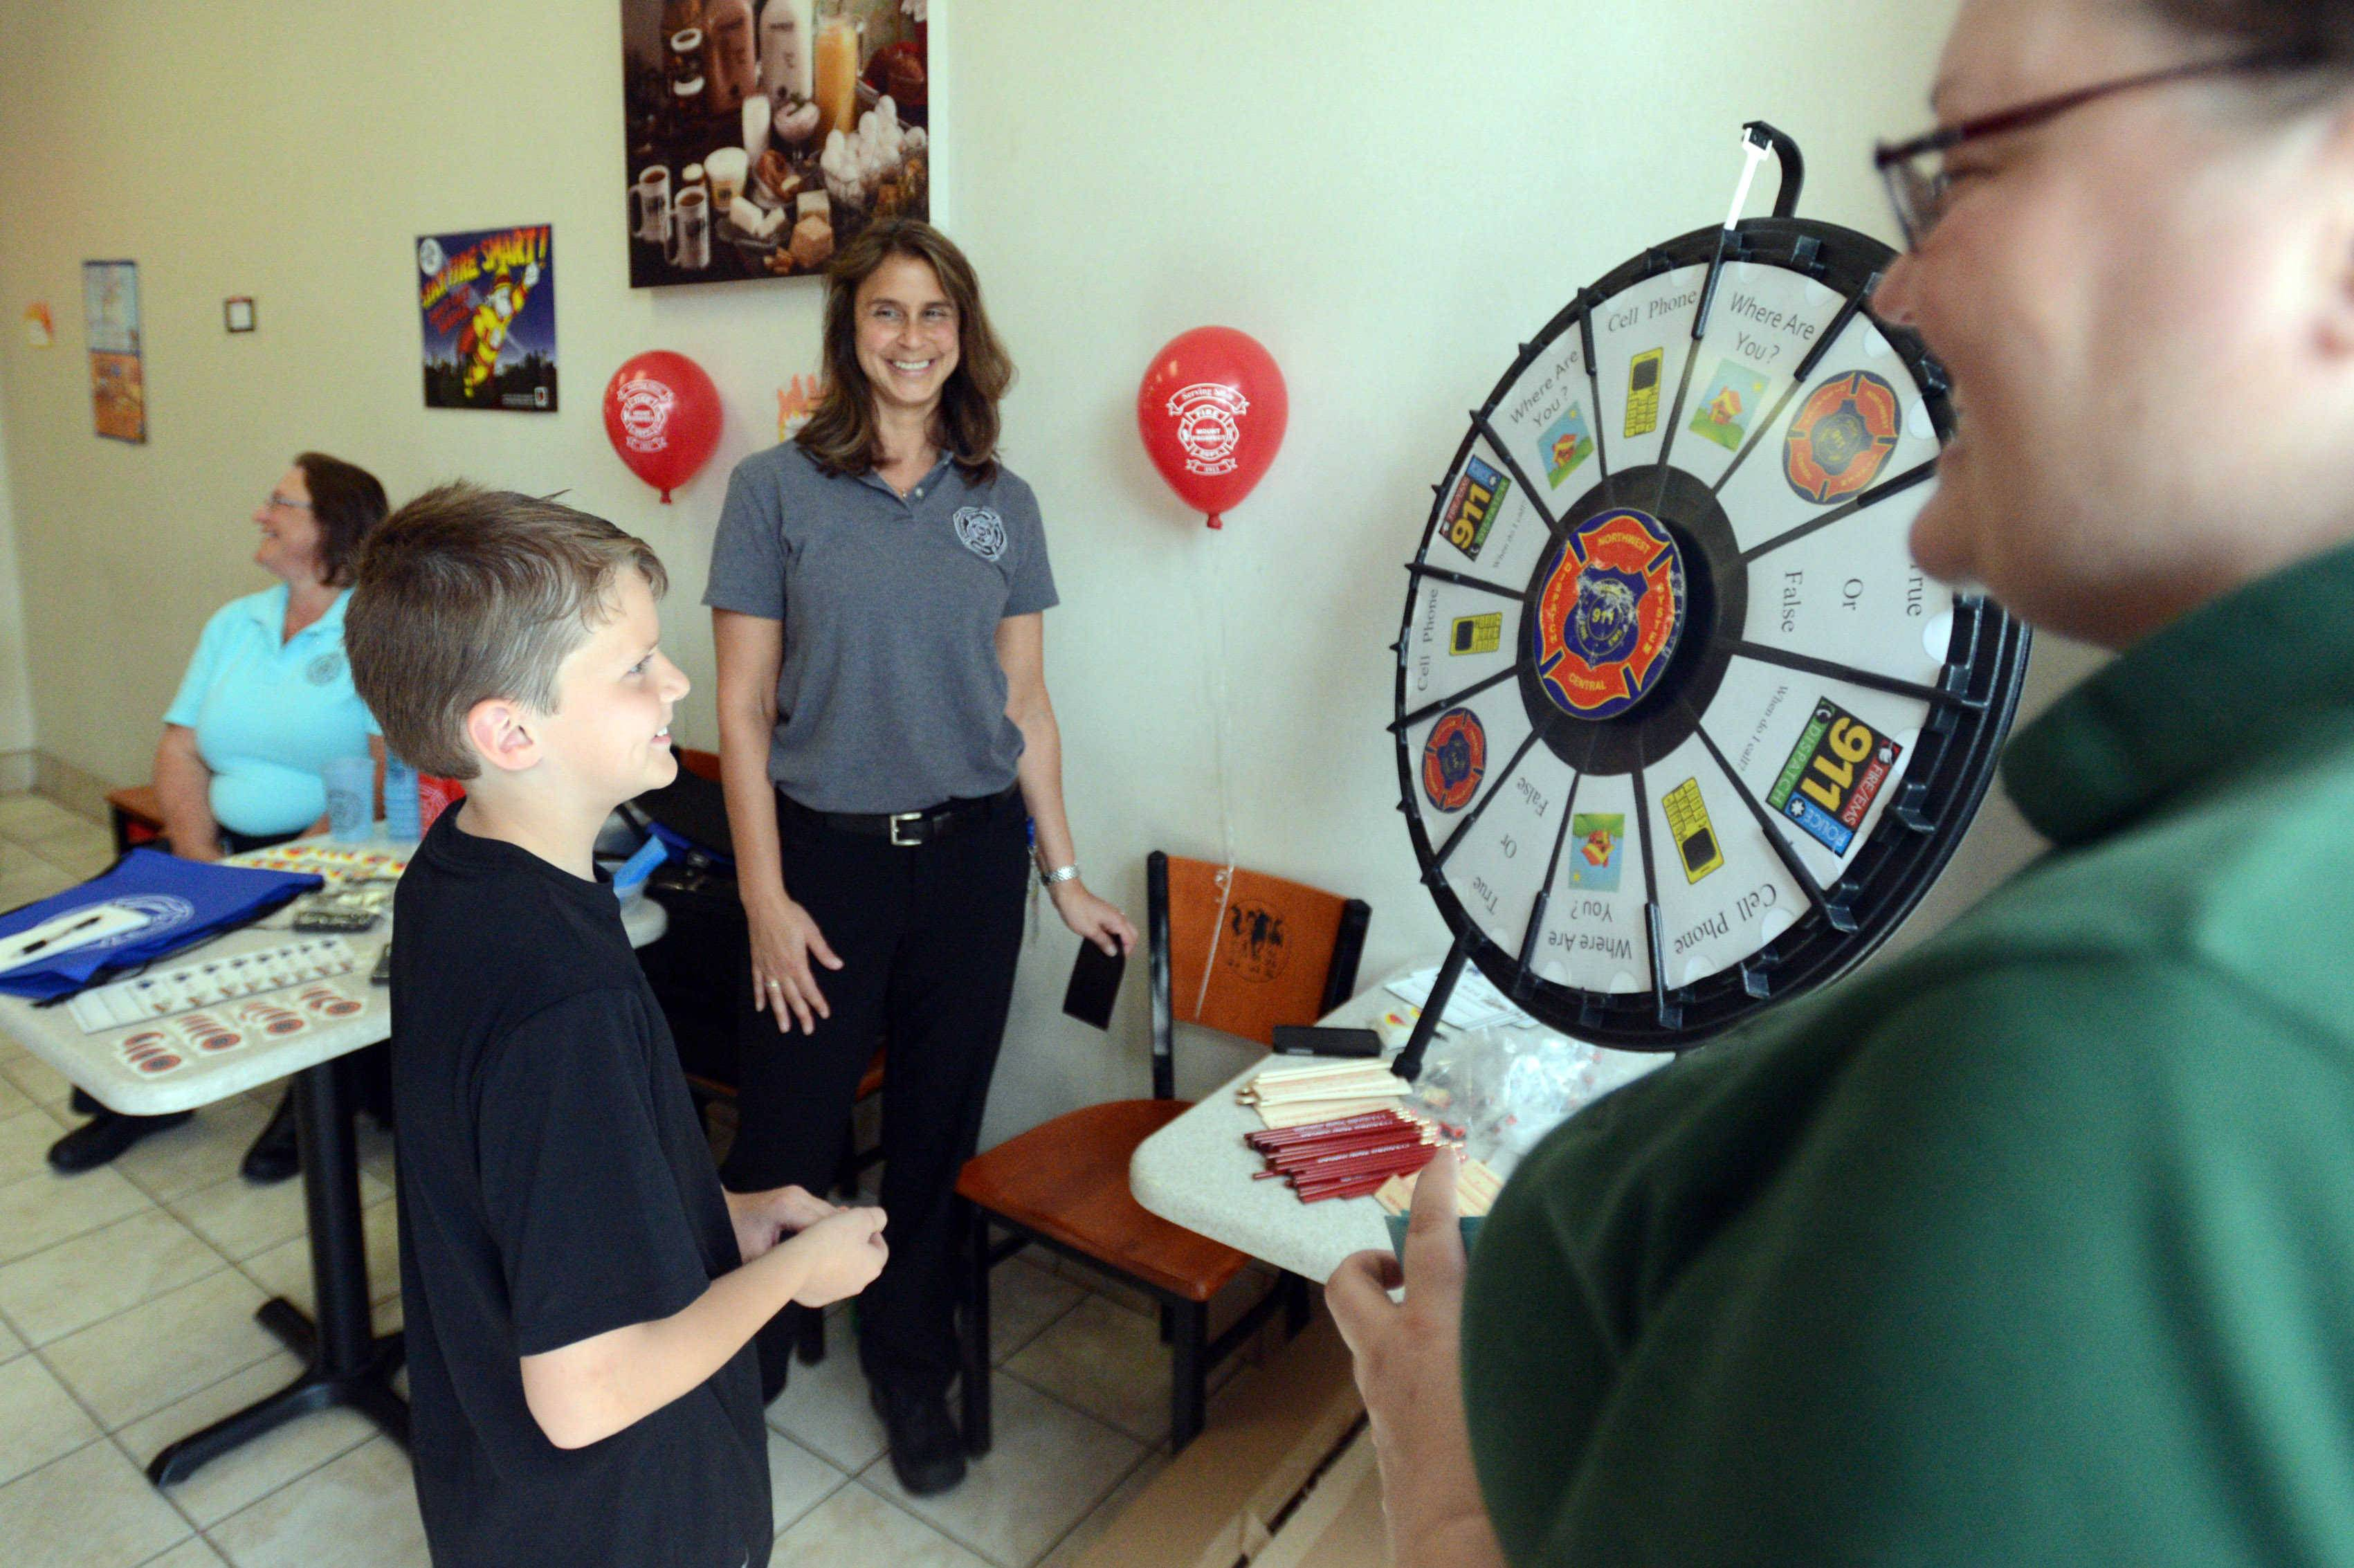 Mark Merrill, 10, of Des Plaines answers a safety question after taking a spin at the wheel during the 9-1-1 Not Just for Emergencies event at the Oberweis Dairy store in Mount Prospect on Monday. At far right is emergency dispatcher Deborah Moritz.